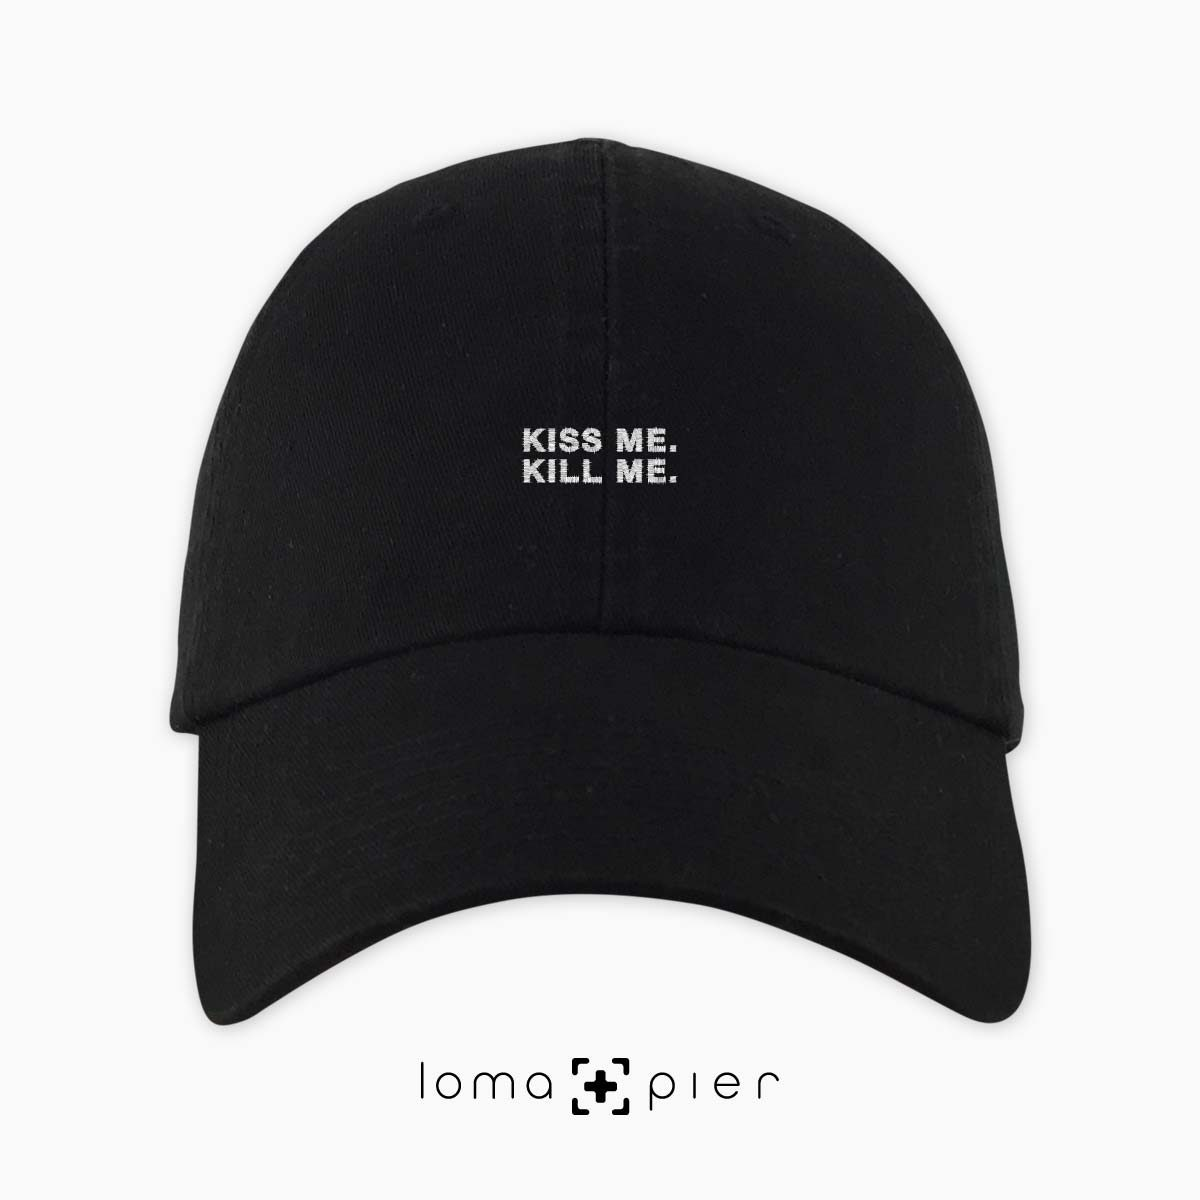 KISS ME. KILL ME. typography embroidered on a black unstructured dad hat with white thread by loma+pier hat store made in the USA